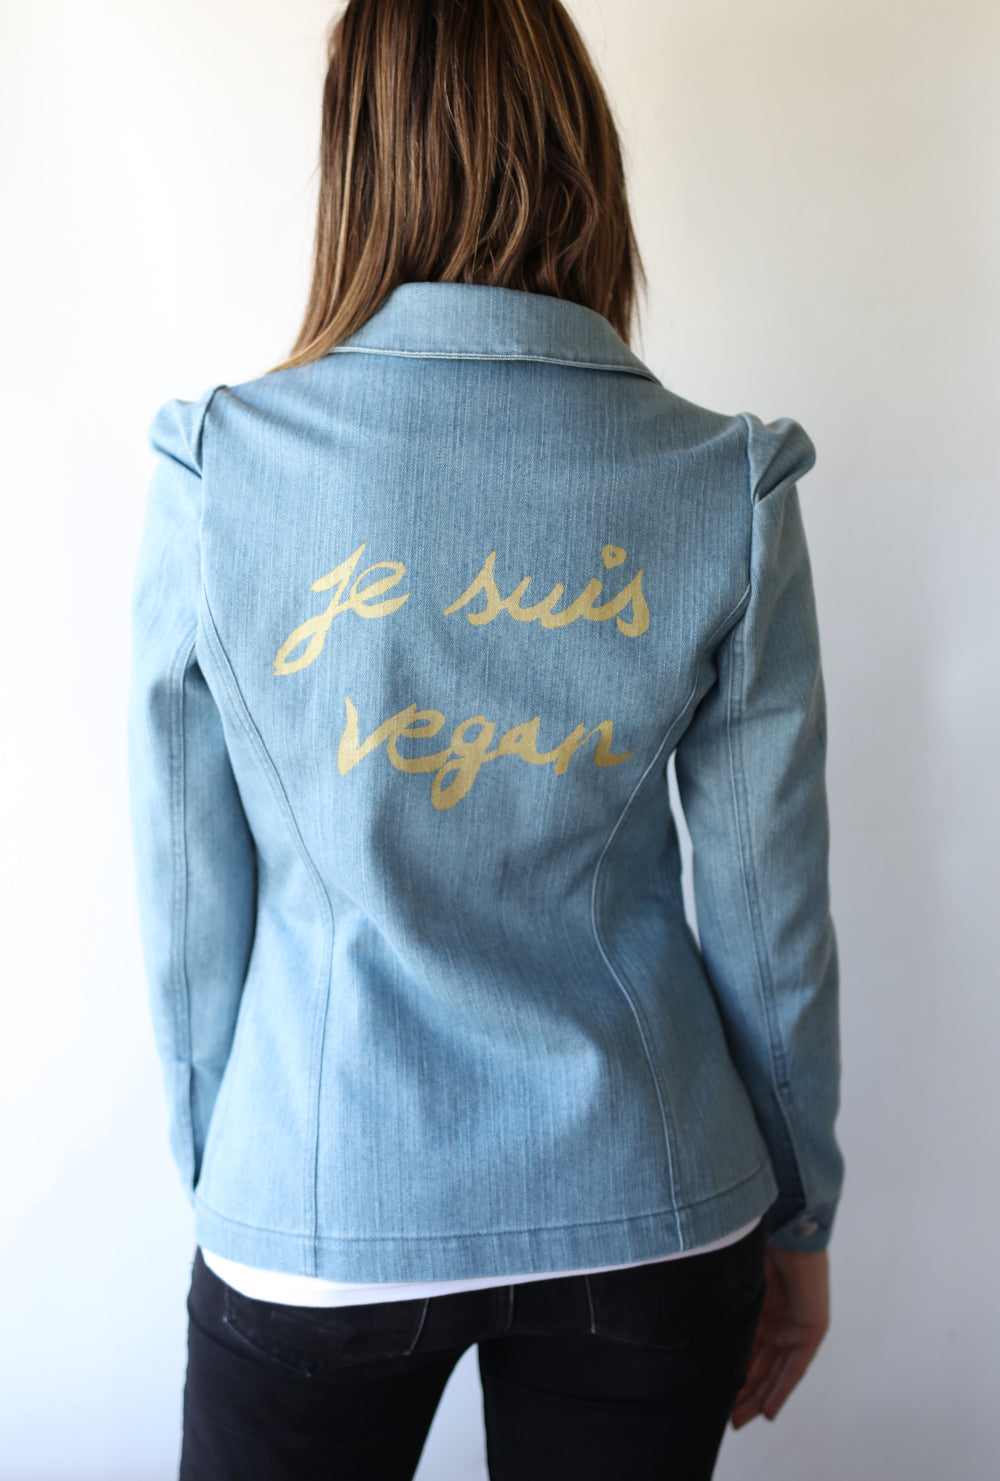 "Haute Couture One of a Kind Up-cycled New Jacket ""Je Suis Vegan"" Collab & Design by Jarod-Pi"